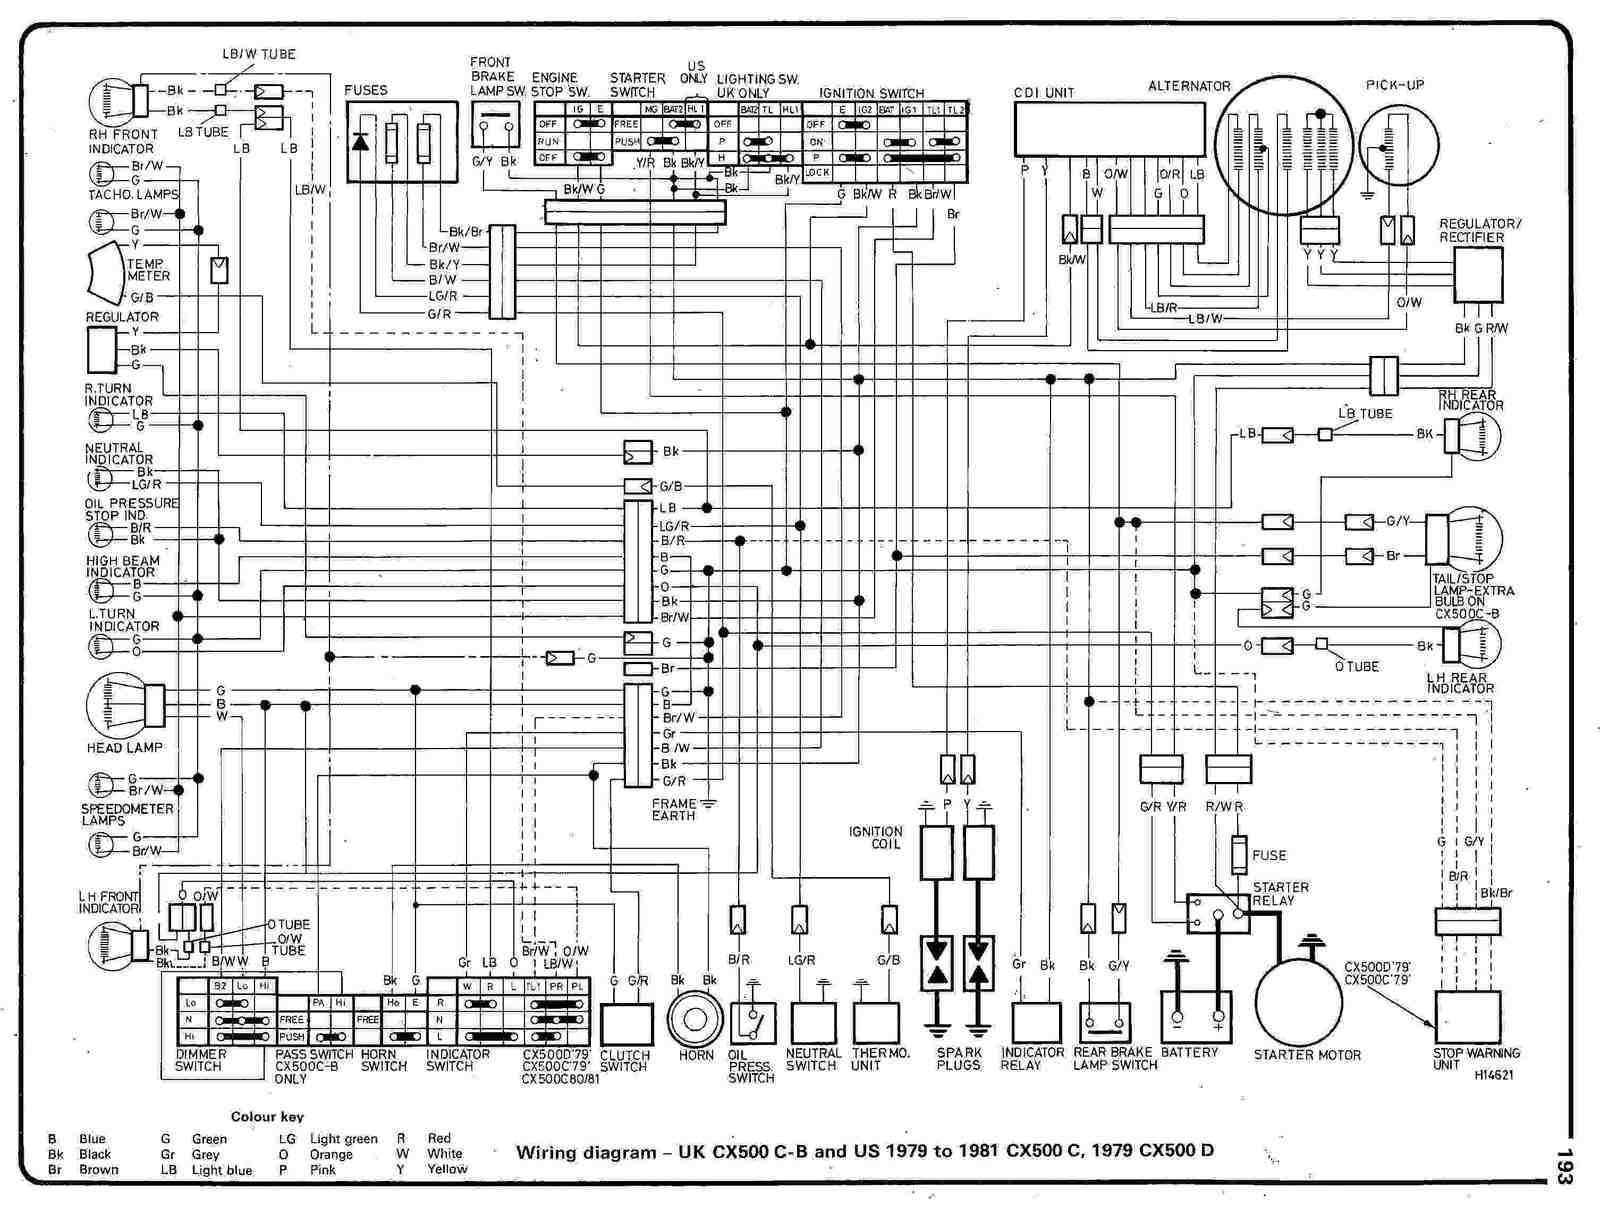 Honda Xl100 Electrical Wiring Diagram Wire Data Schema Okr T 10 Schematics Diagrams 1975 Xl175 Engine Schematic Residential Symbols U2022 Rh Calicartel Co Industrial